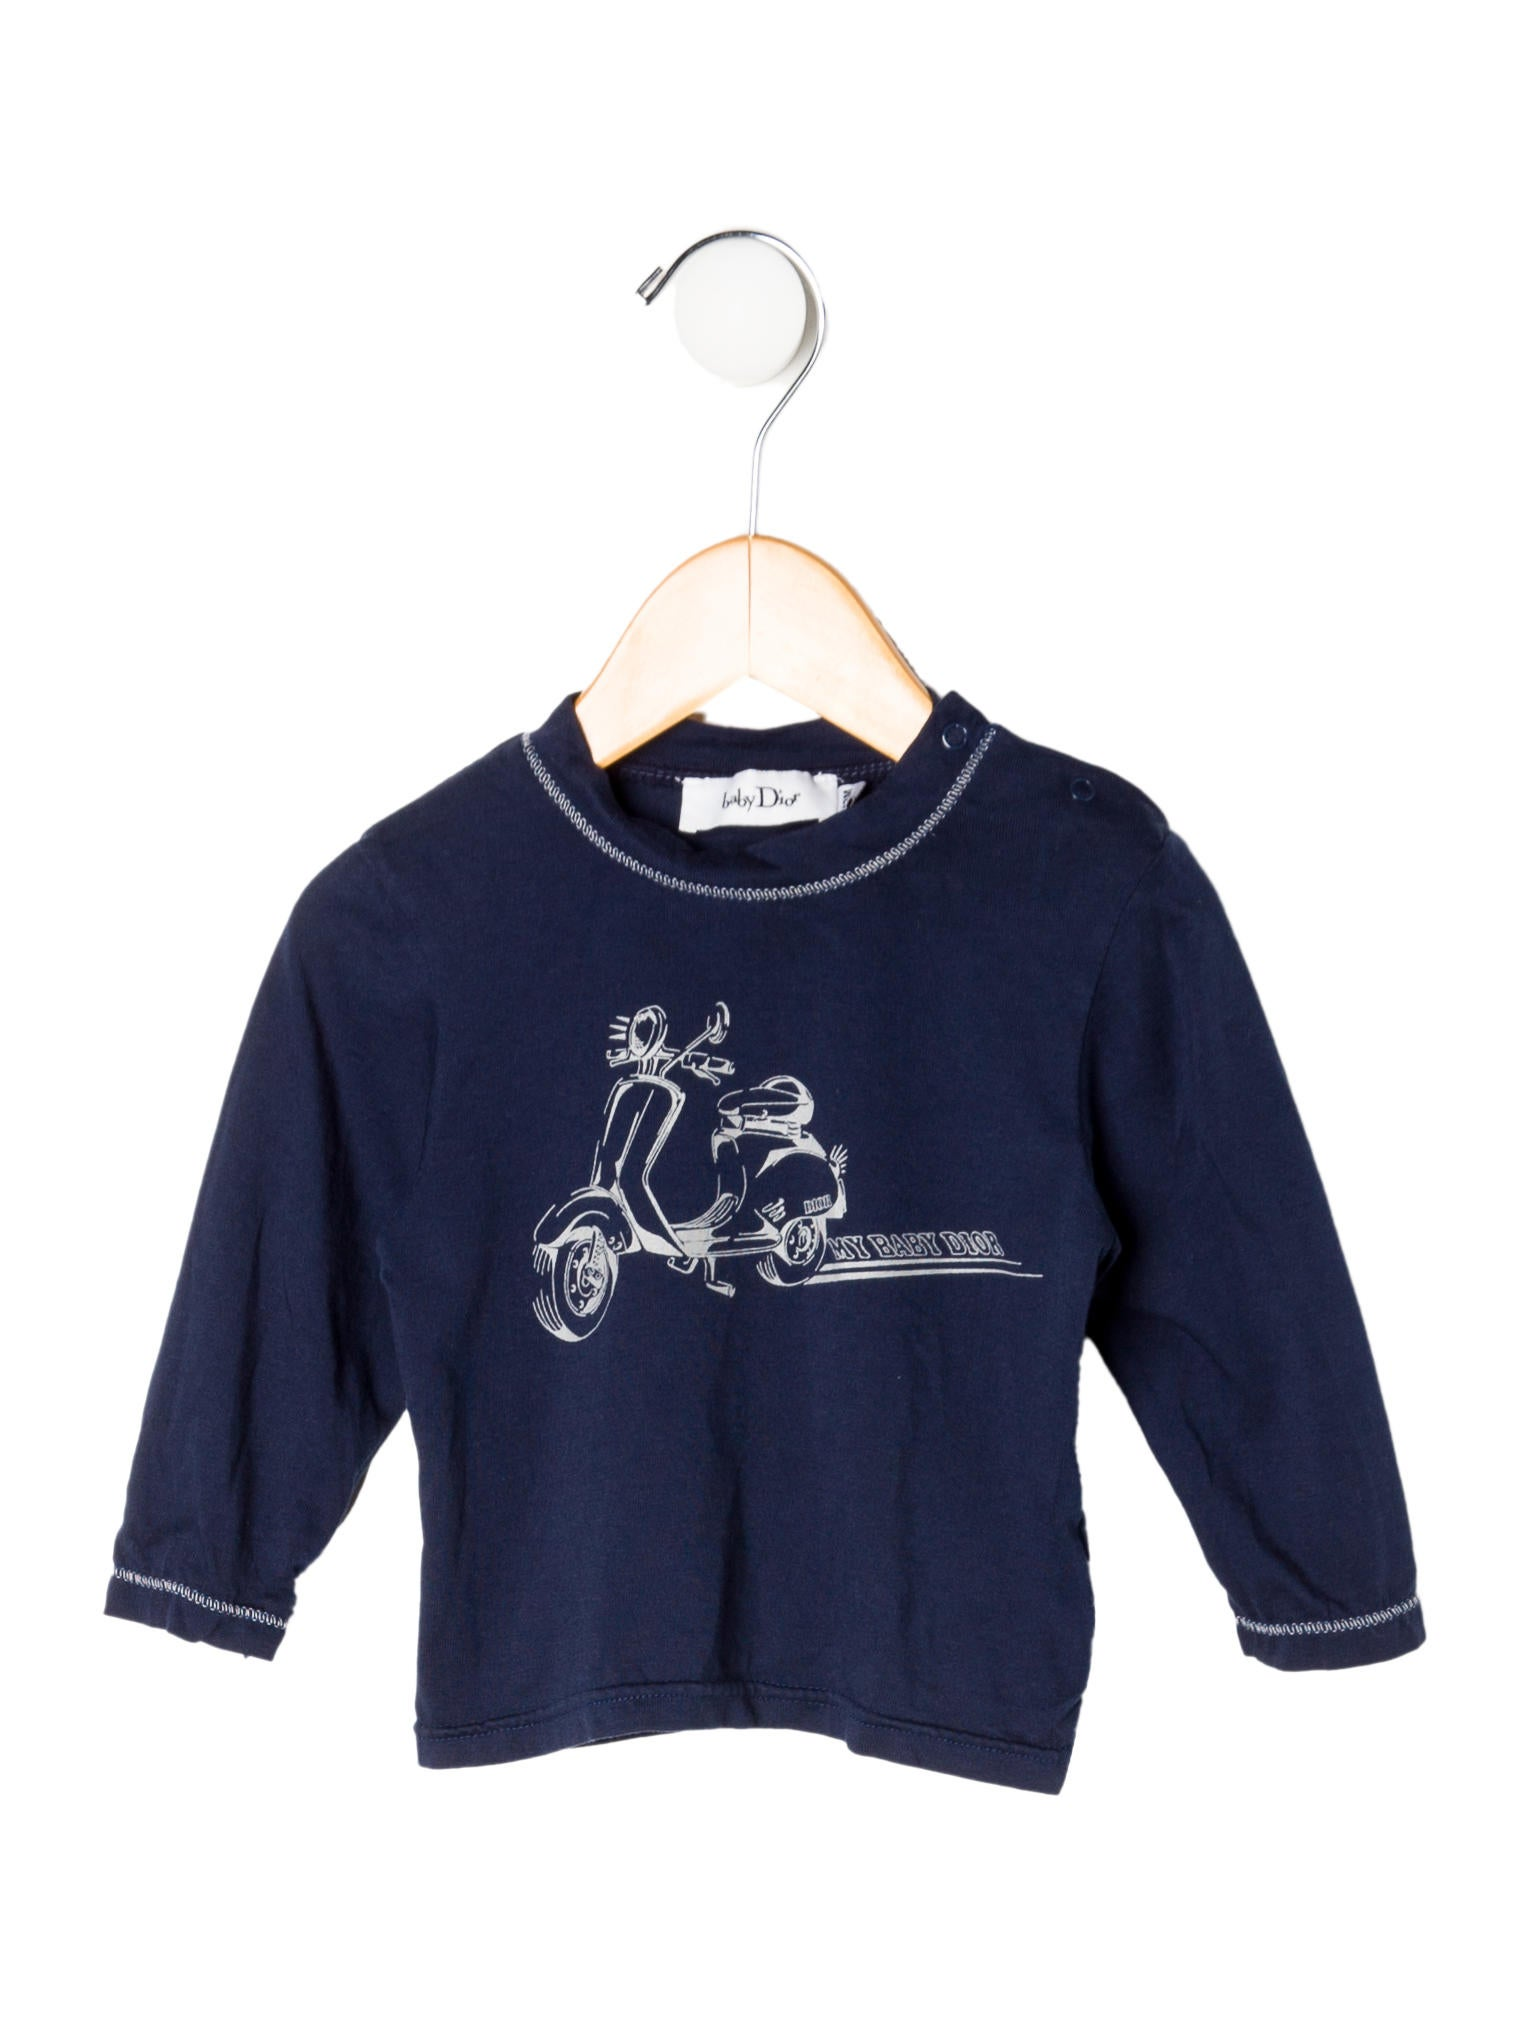 Boys' tops and T-shirts in size 4 and up include a variety of sleeve styles and fabric types that can be suited to active and dress-up occasions. Boys' tops and T-shirts are also available in a wide range of colors, designs, and prints.